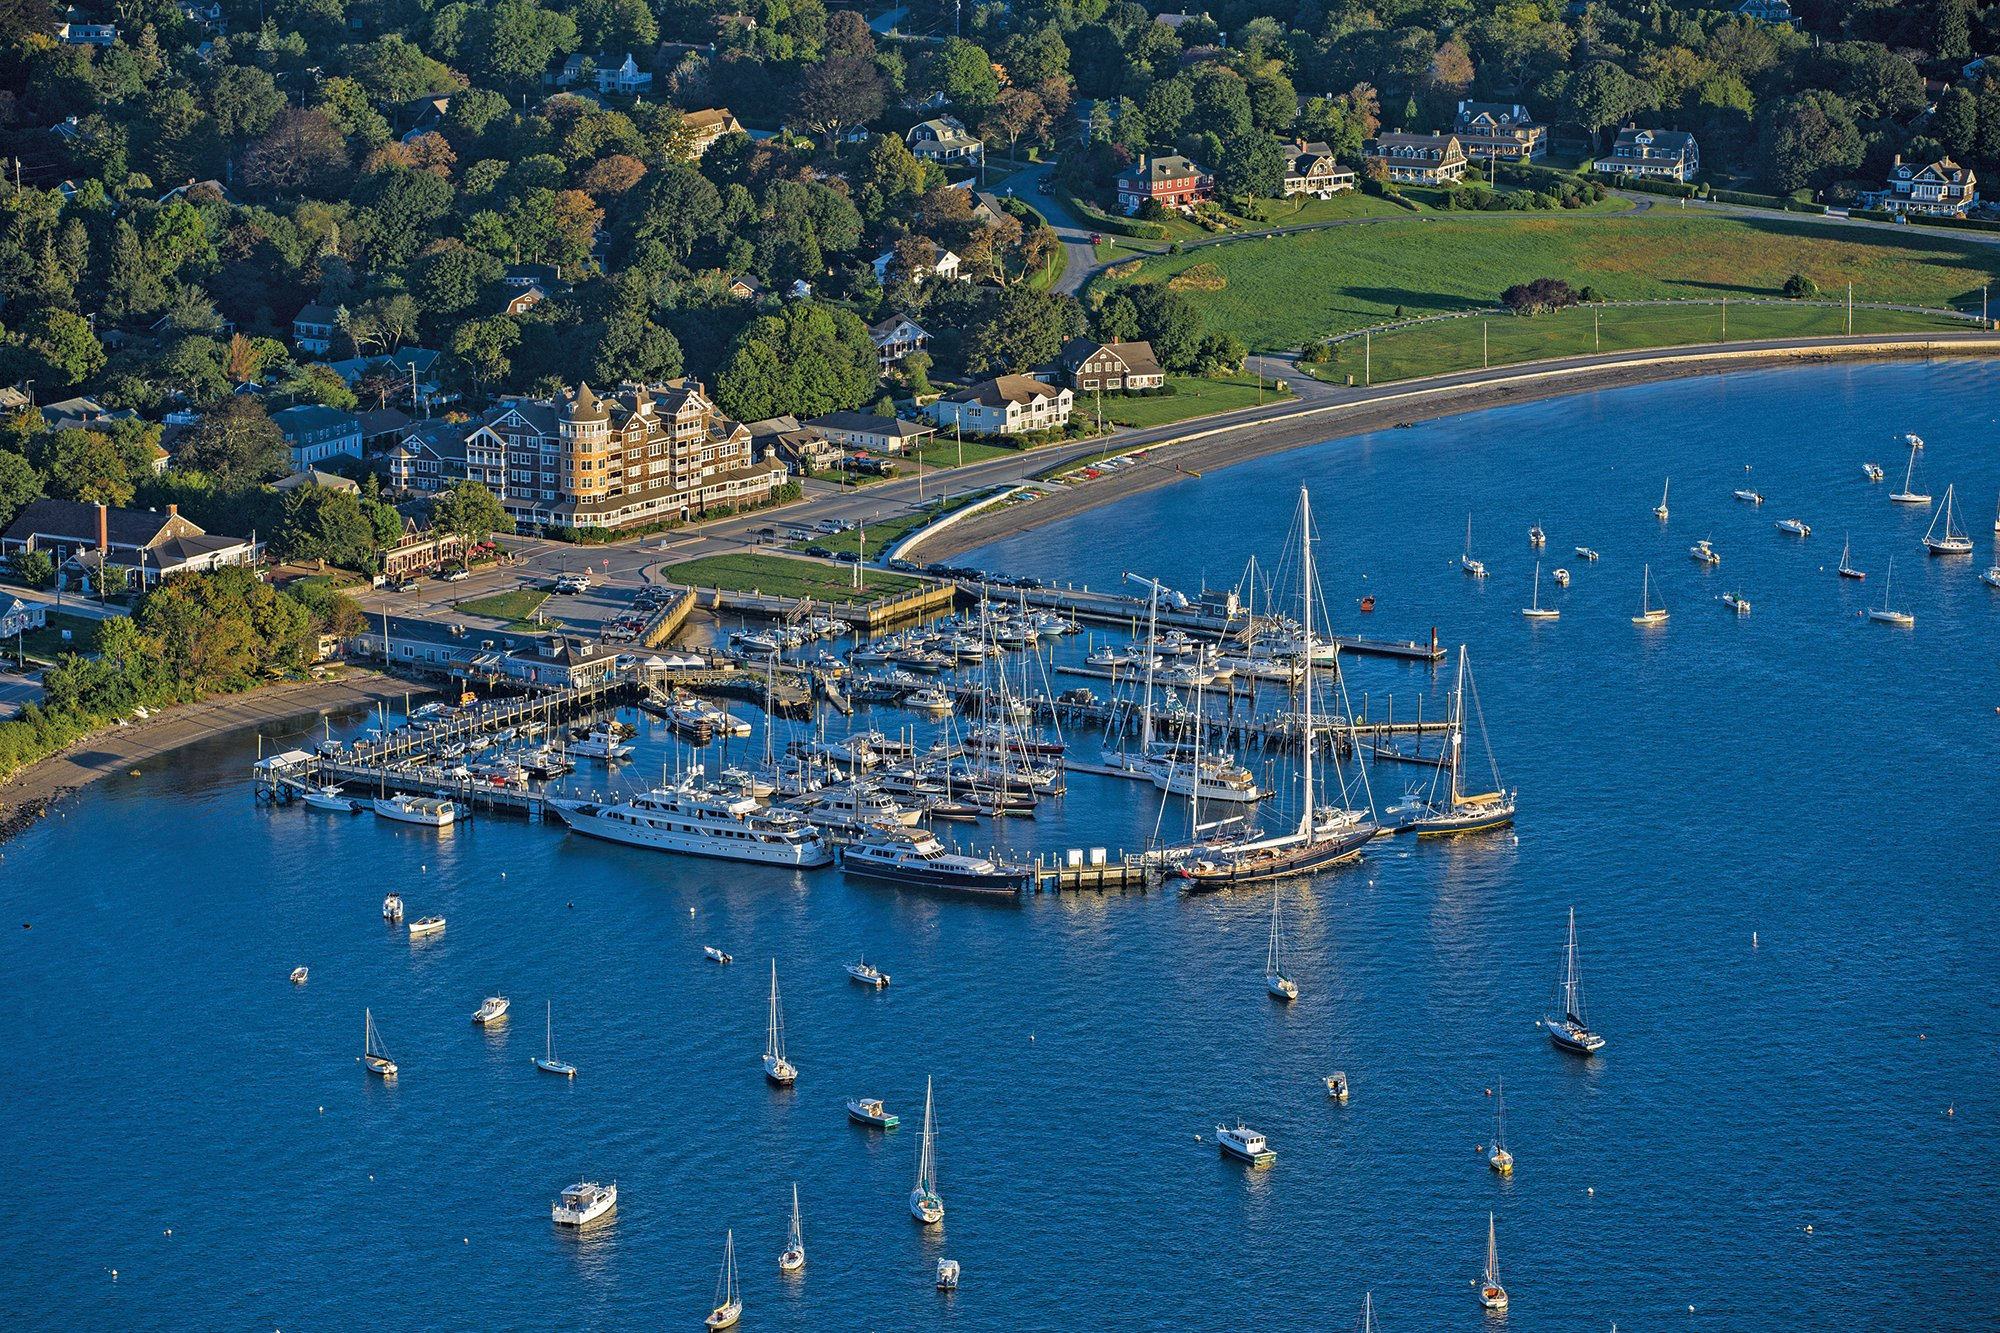 Tips For Transients At The Conanicut Marina